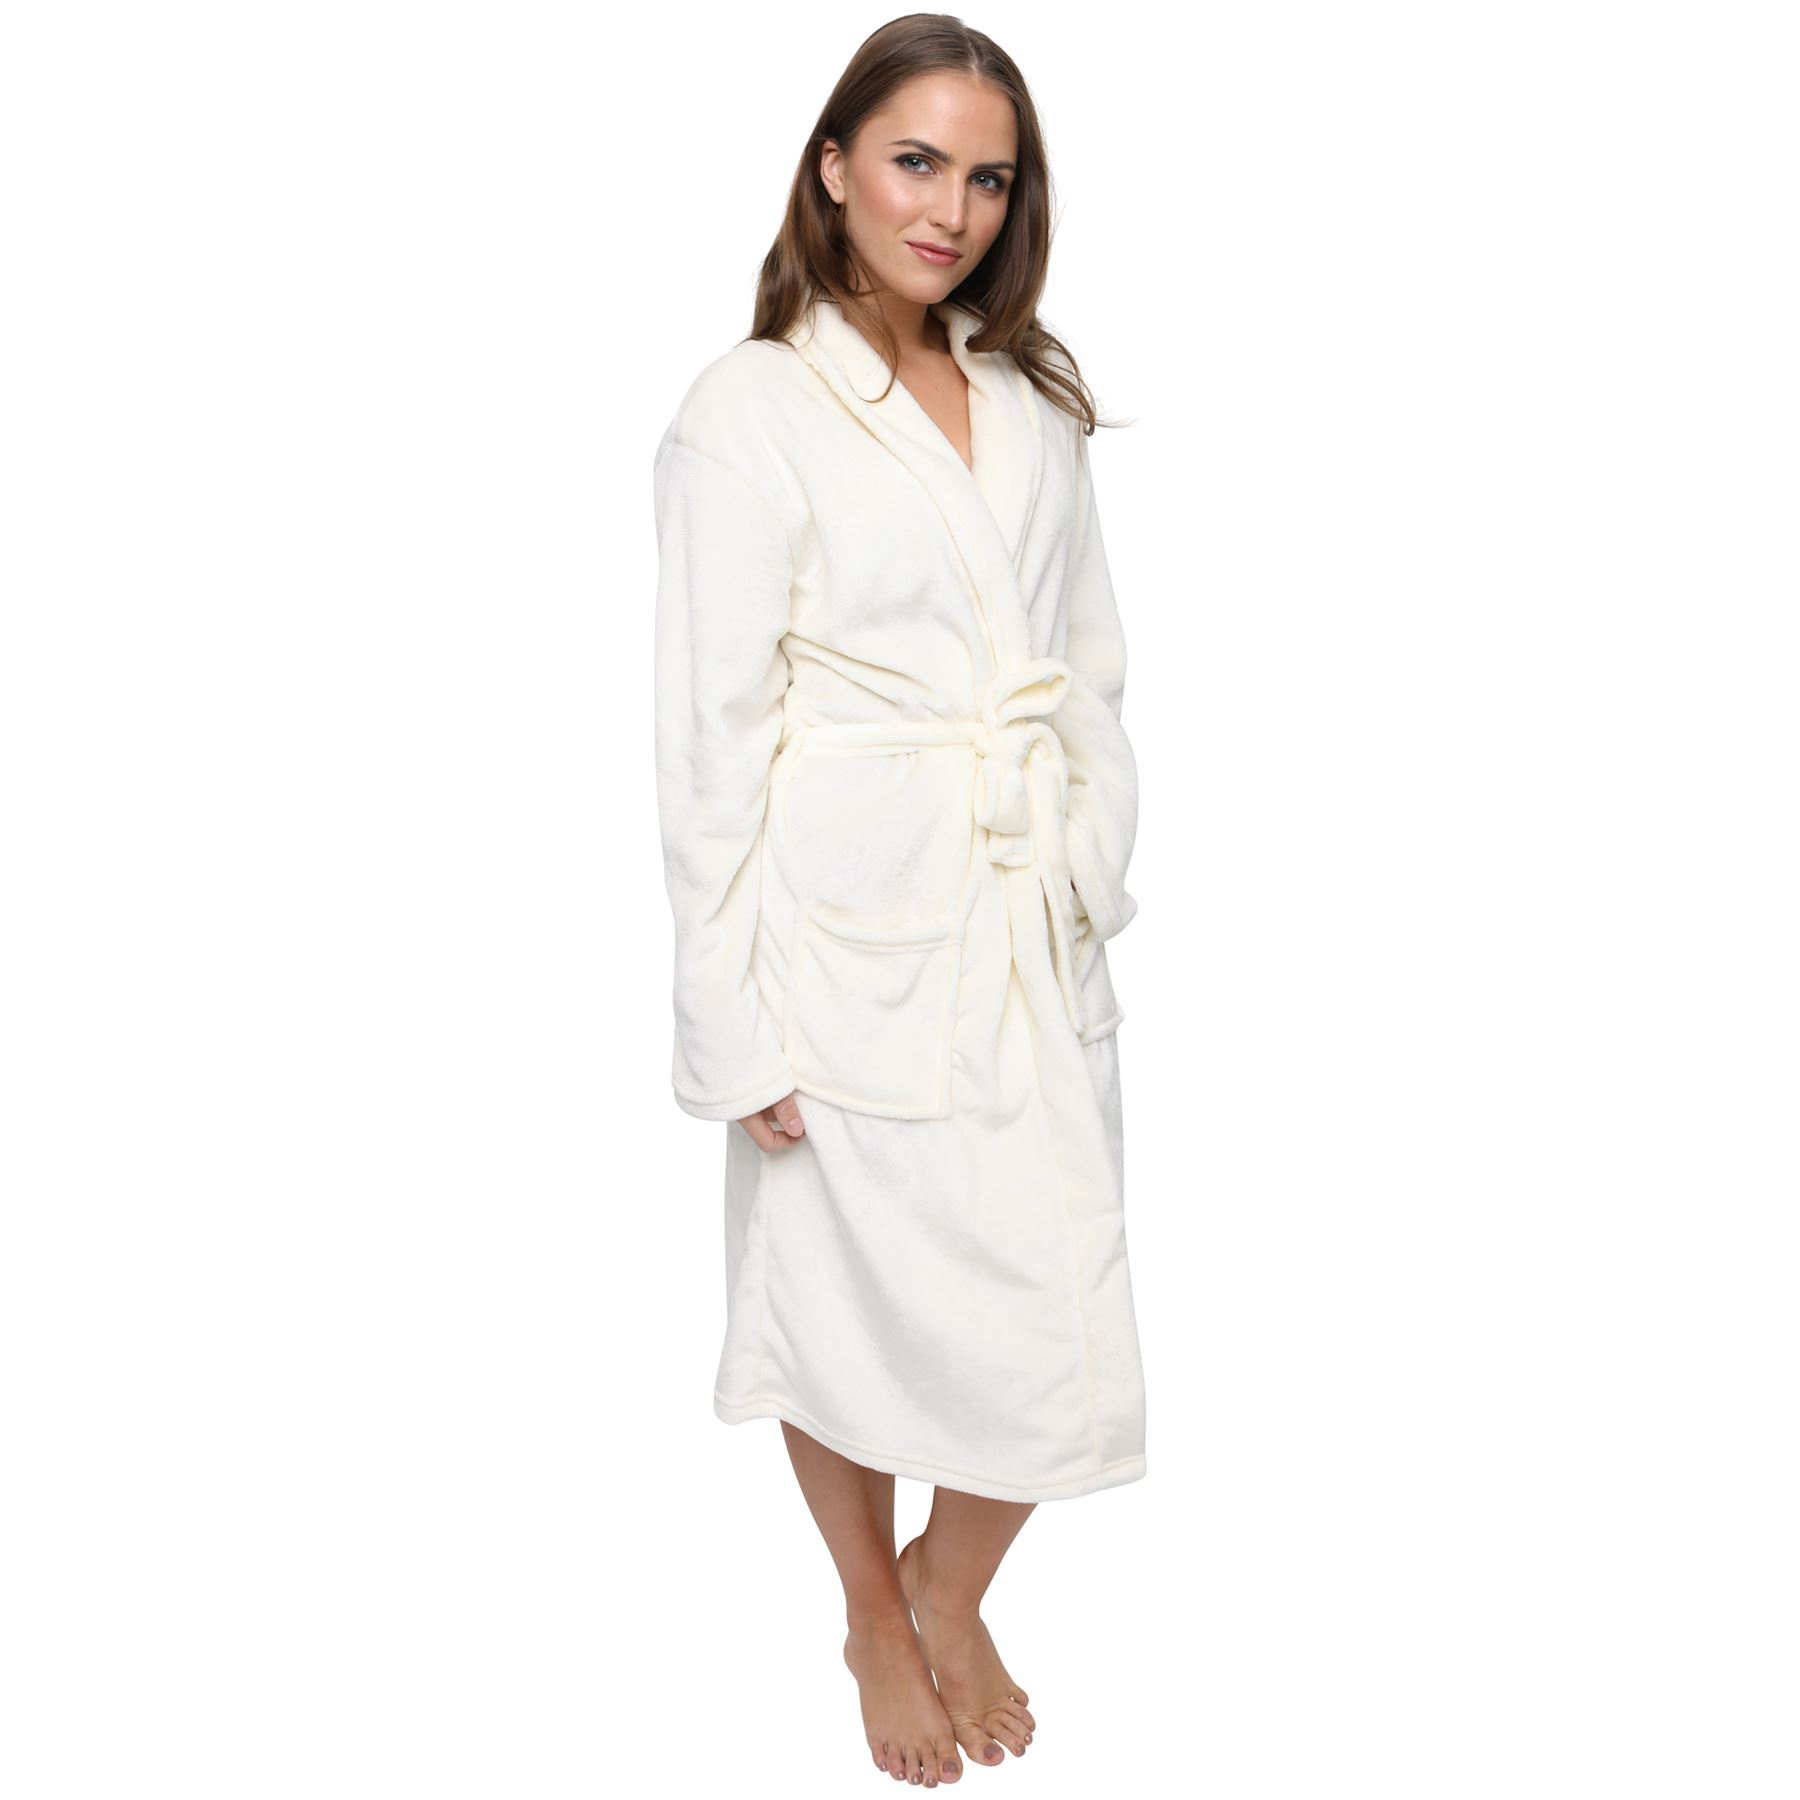 Soft and luxurious, the His or Hers Embroidered Luxury Fleece Robe is perfect for the bedroom, bath or casual lounging. Embroidered with His or Hers on the front, add any name in your choice of thread colors and select from 4 different robe colors.